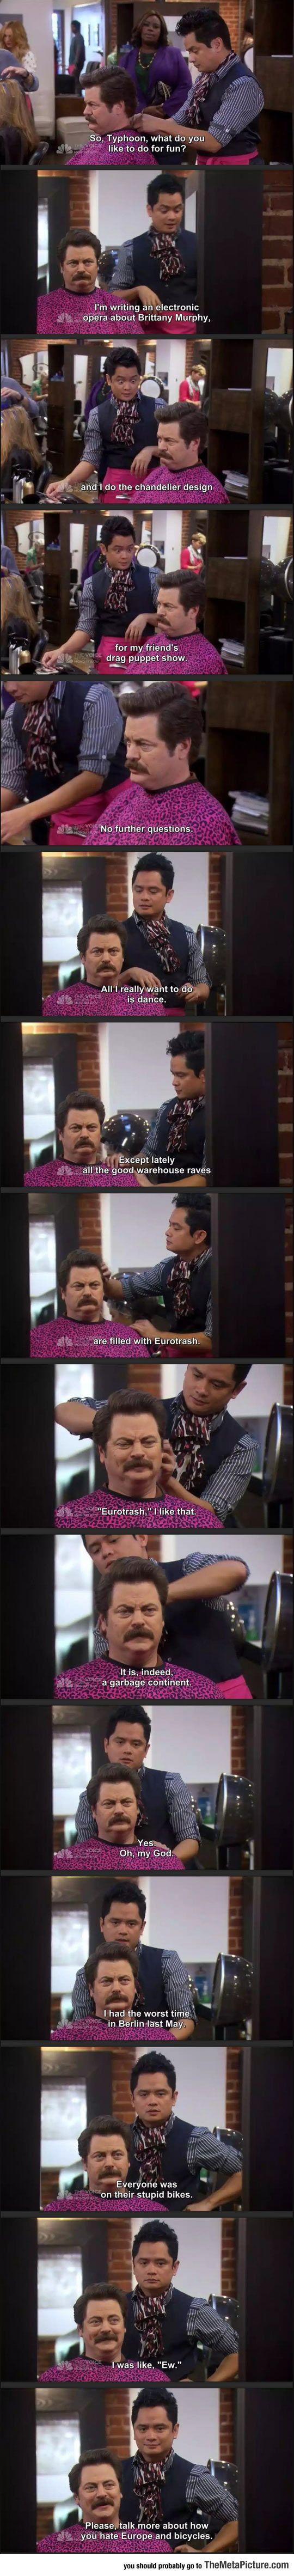 Ron Swanson bonding with a gay hairdresser over their mutual hatred of Europe. Love it!